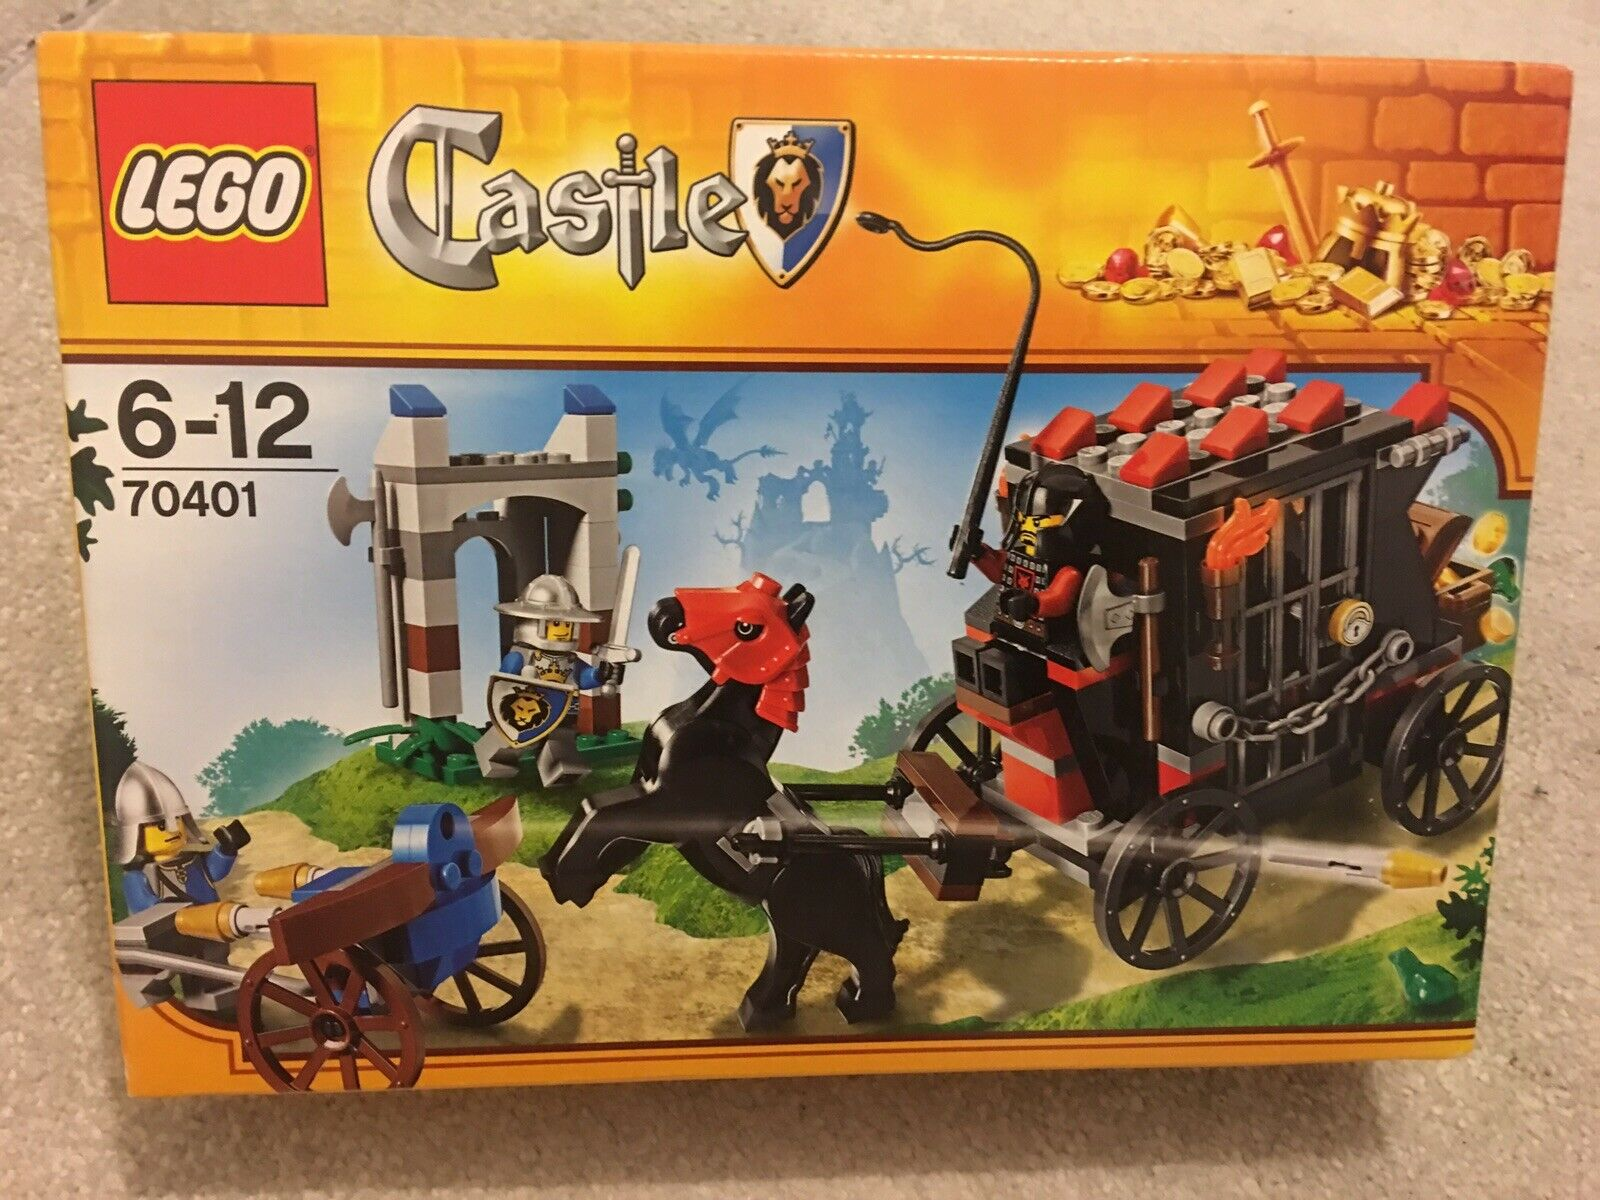 LEGO Castle gold Getaway (70401) - Brand New Sealed In Box